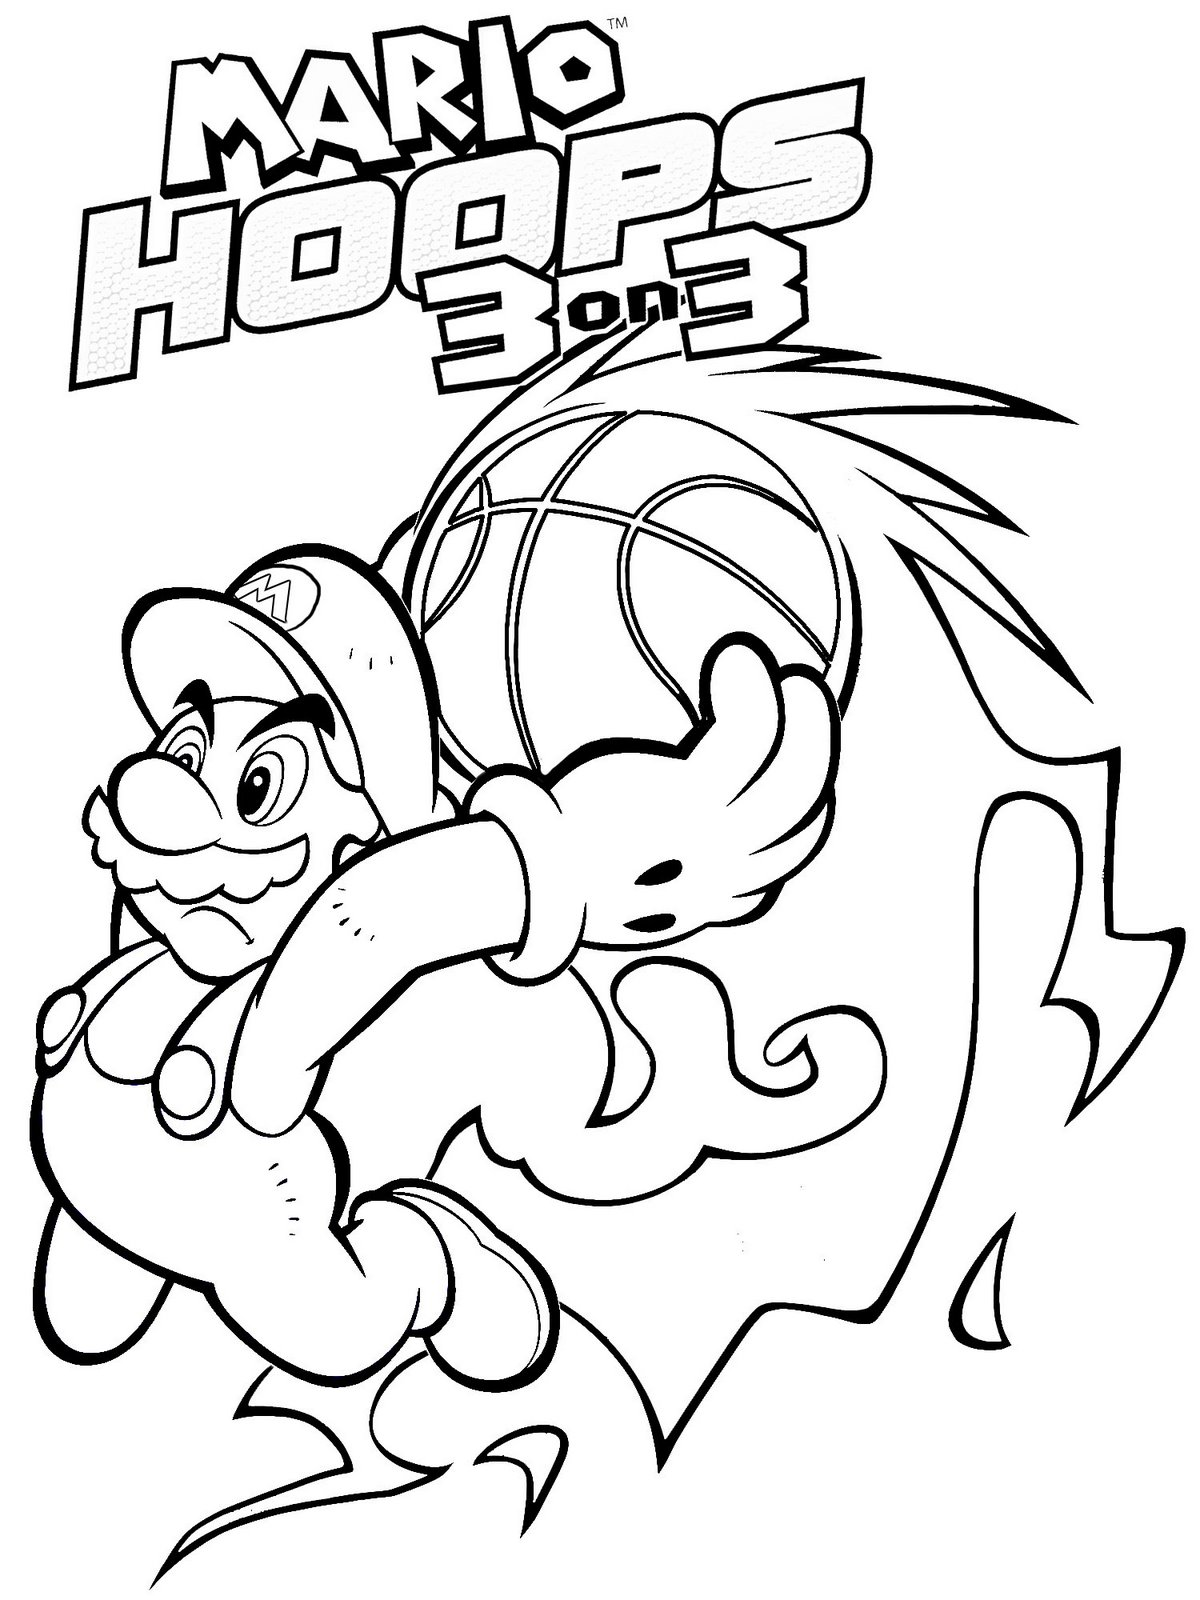 super mario brothers printables super mario bros printable coloring pages best apps for kids mario super printables brothers